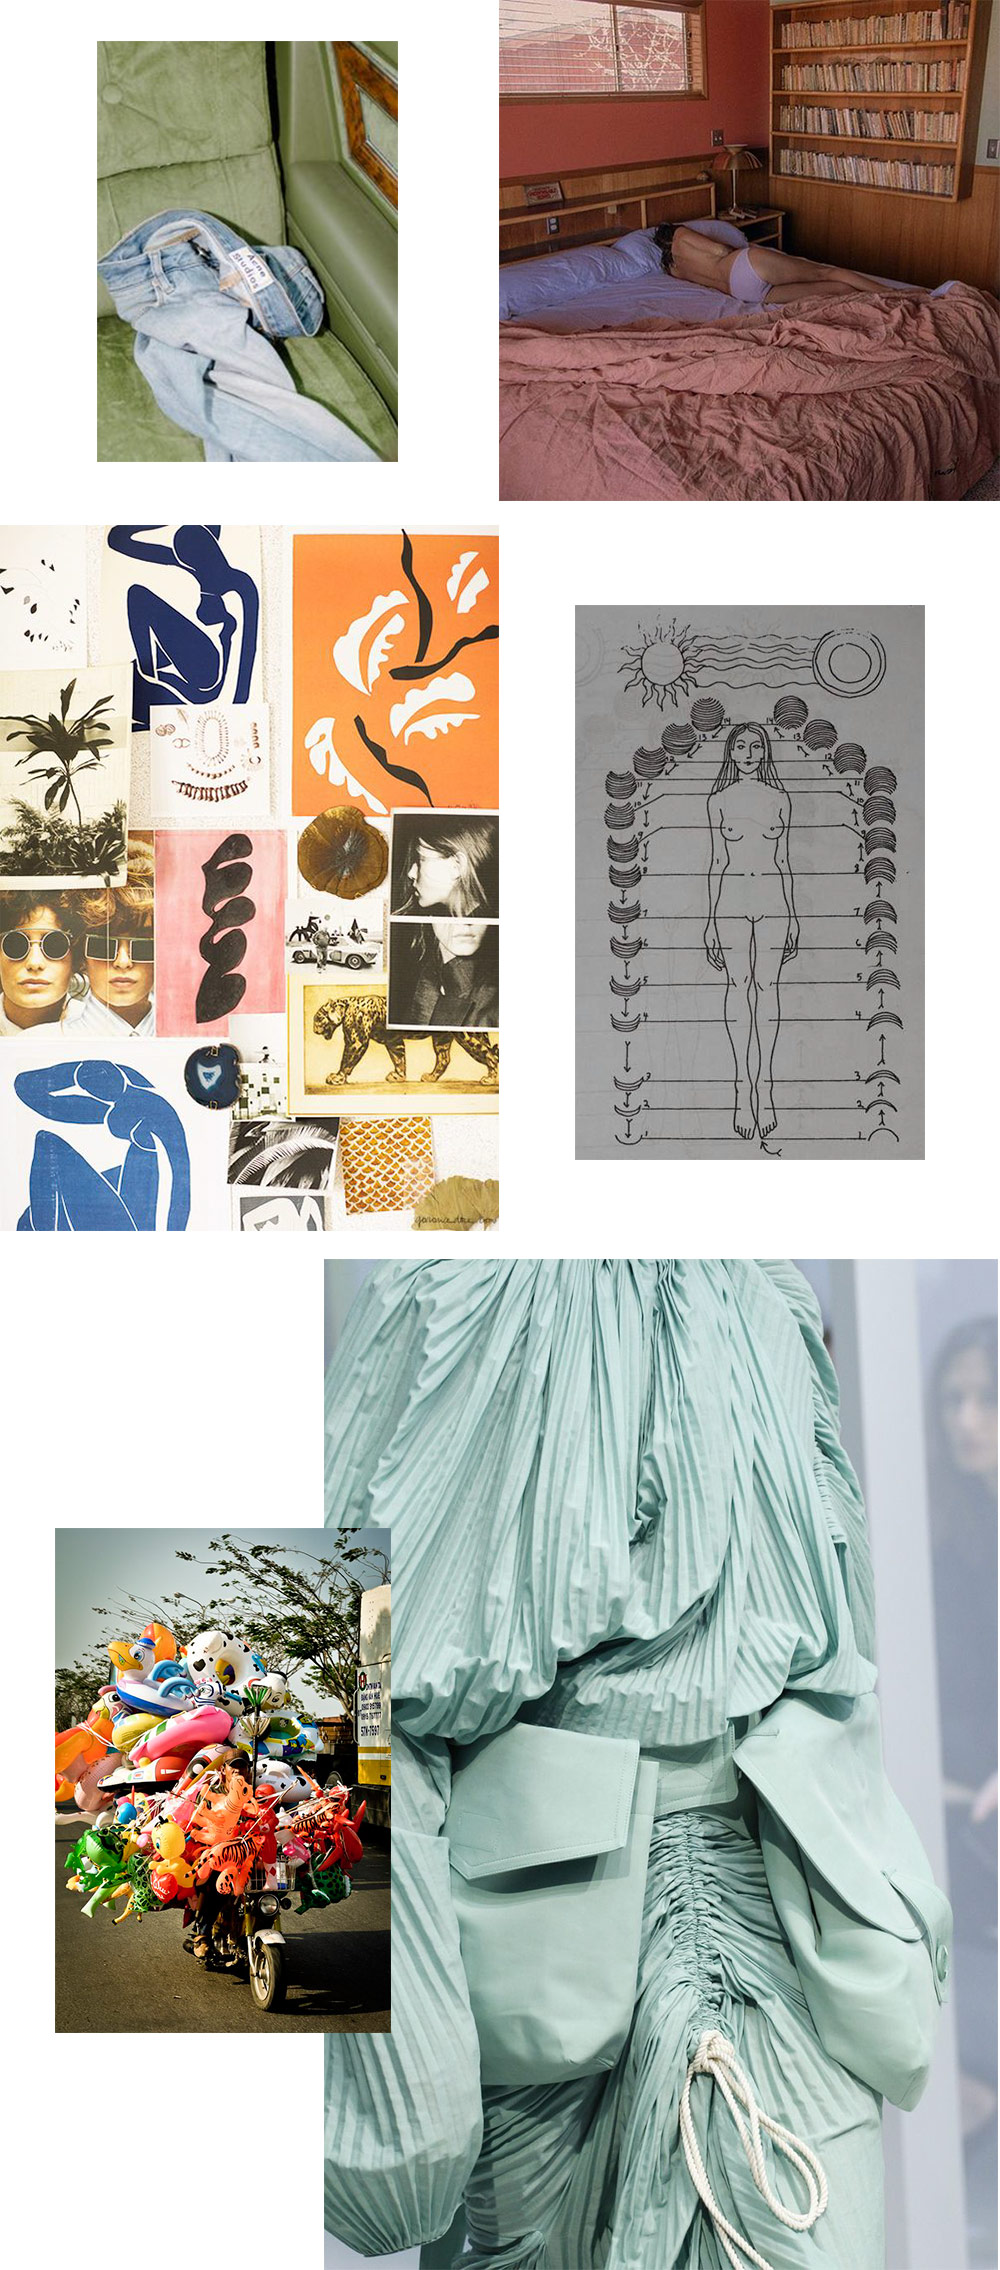 Inspiration-mood-board-information-overload-by-the-petticoat-3